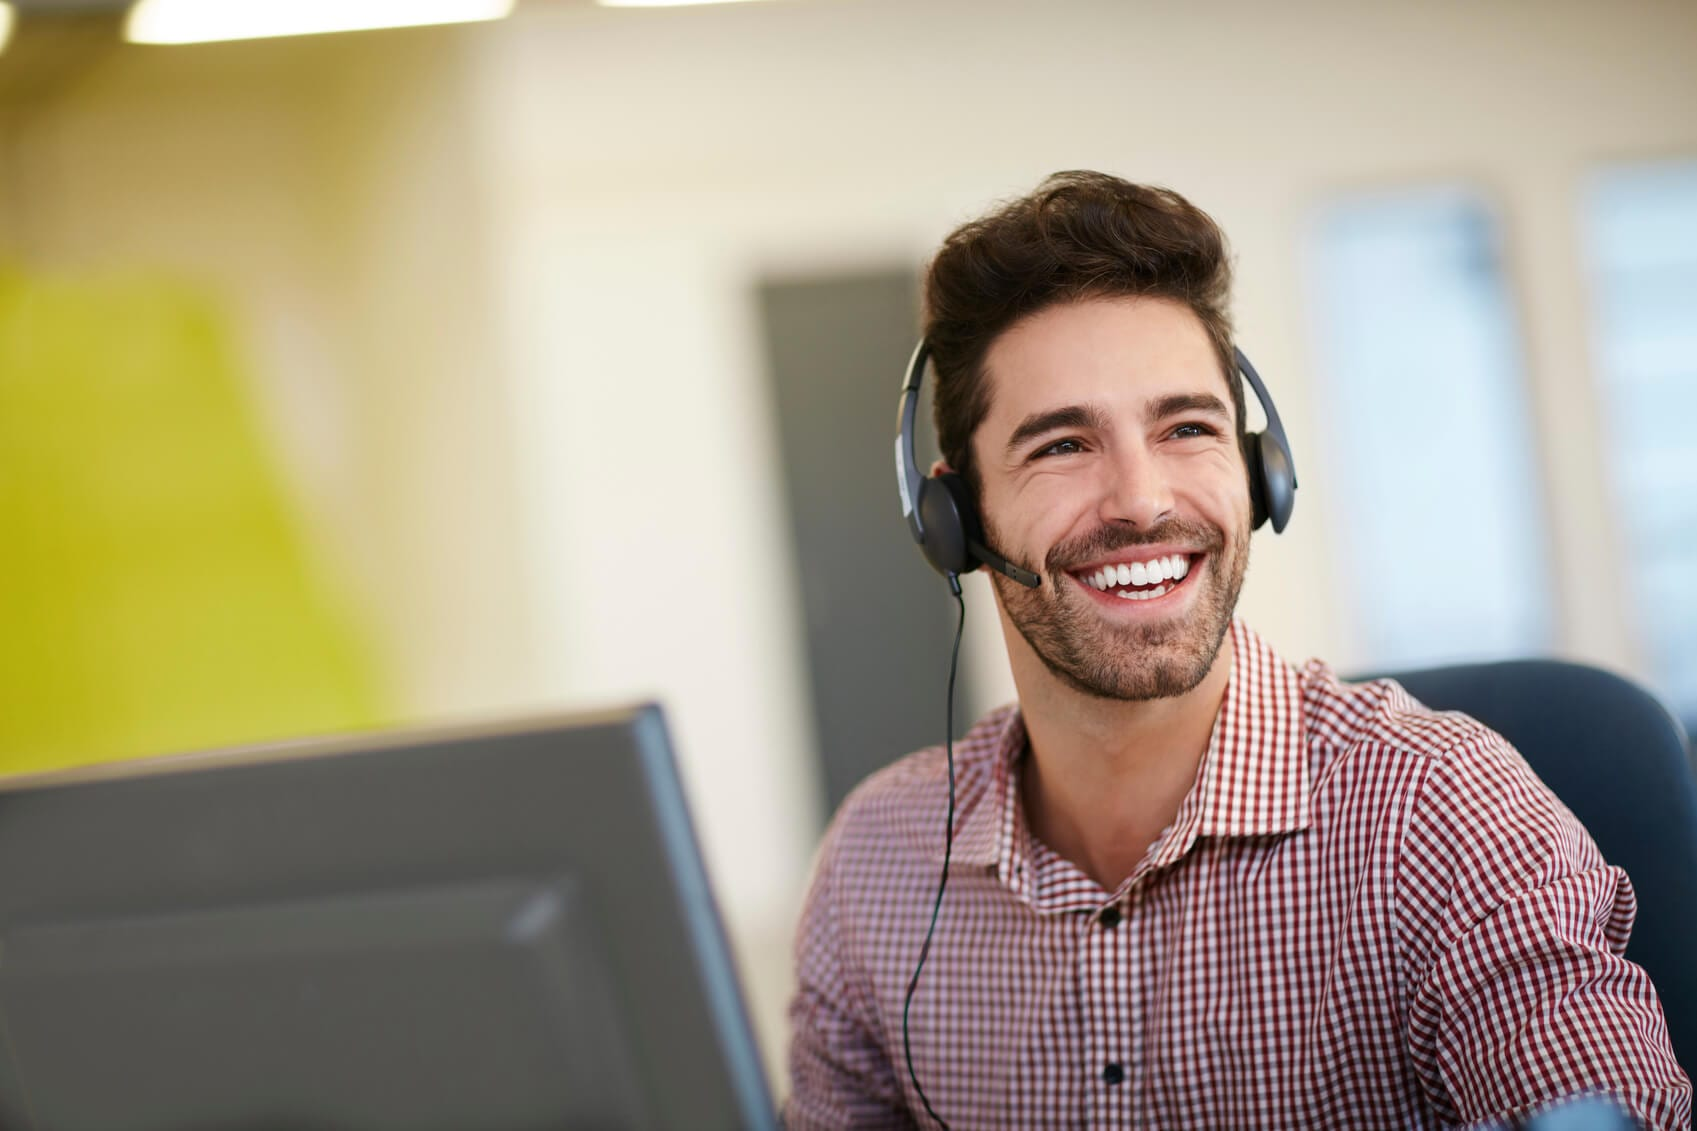 Happy customer support specialist providing excellent customer service.